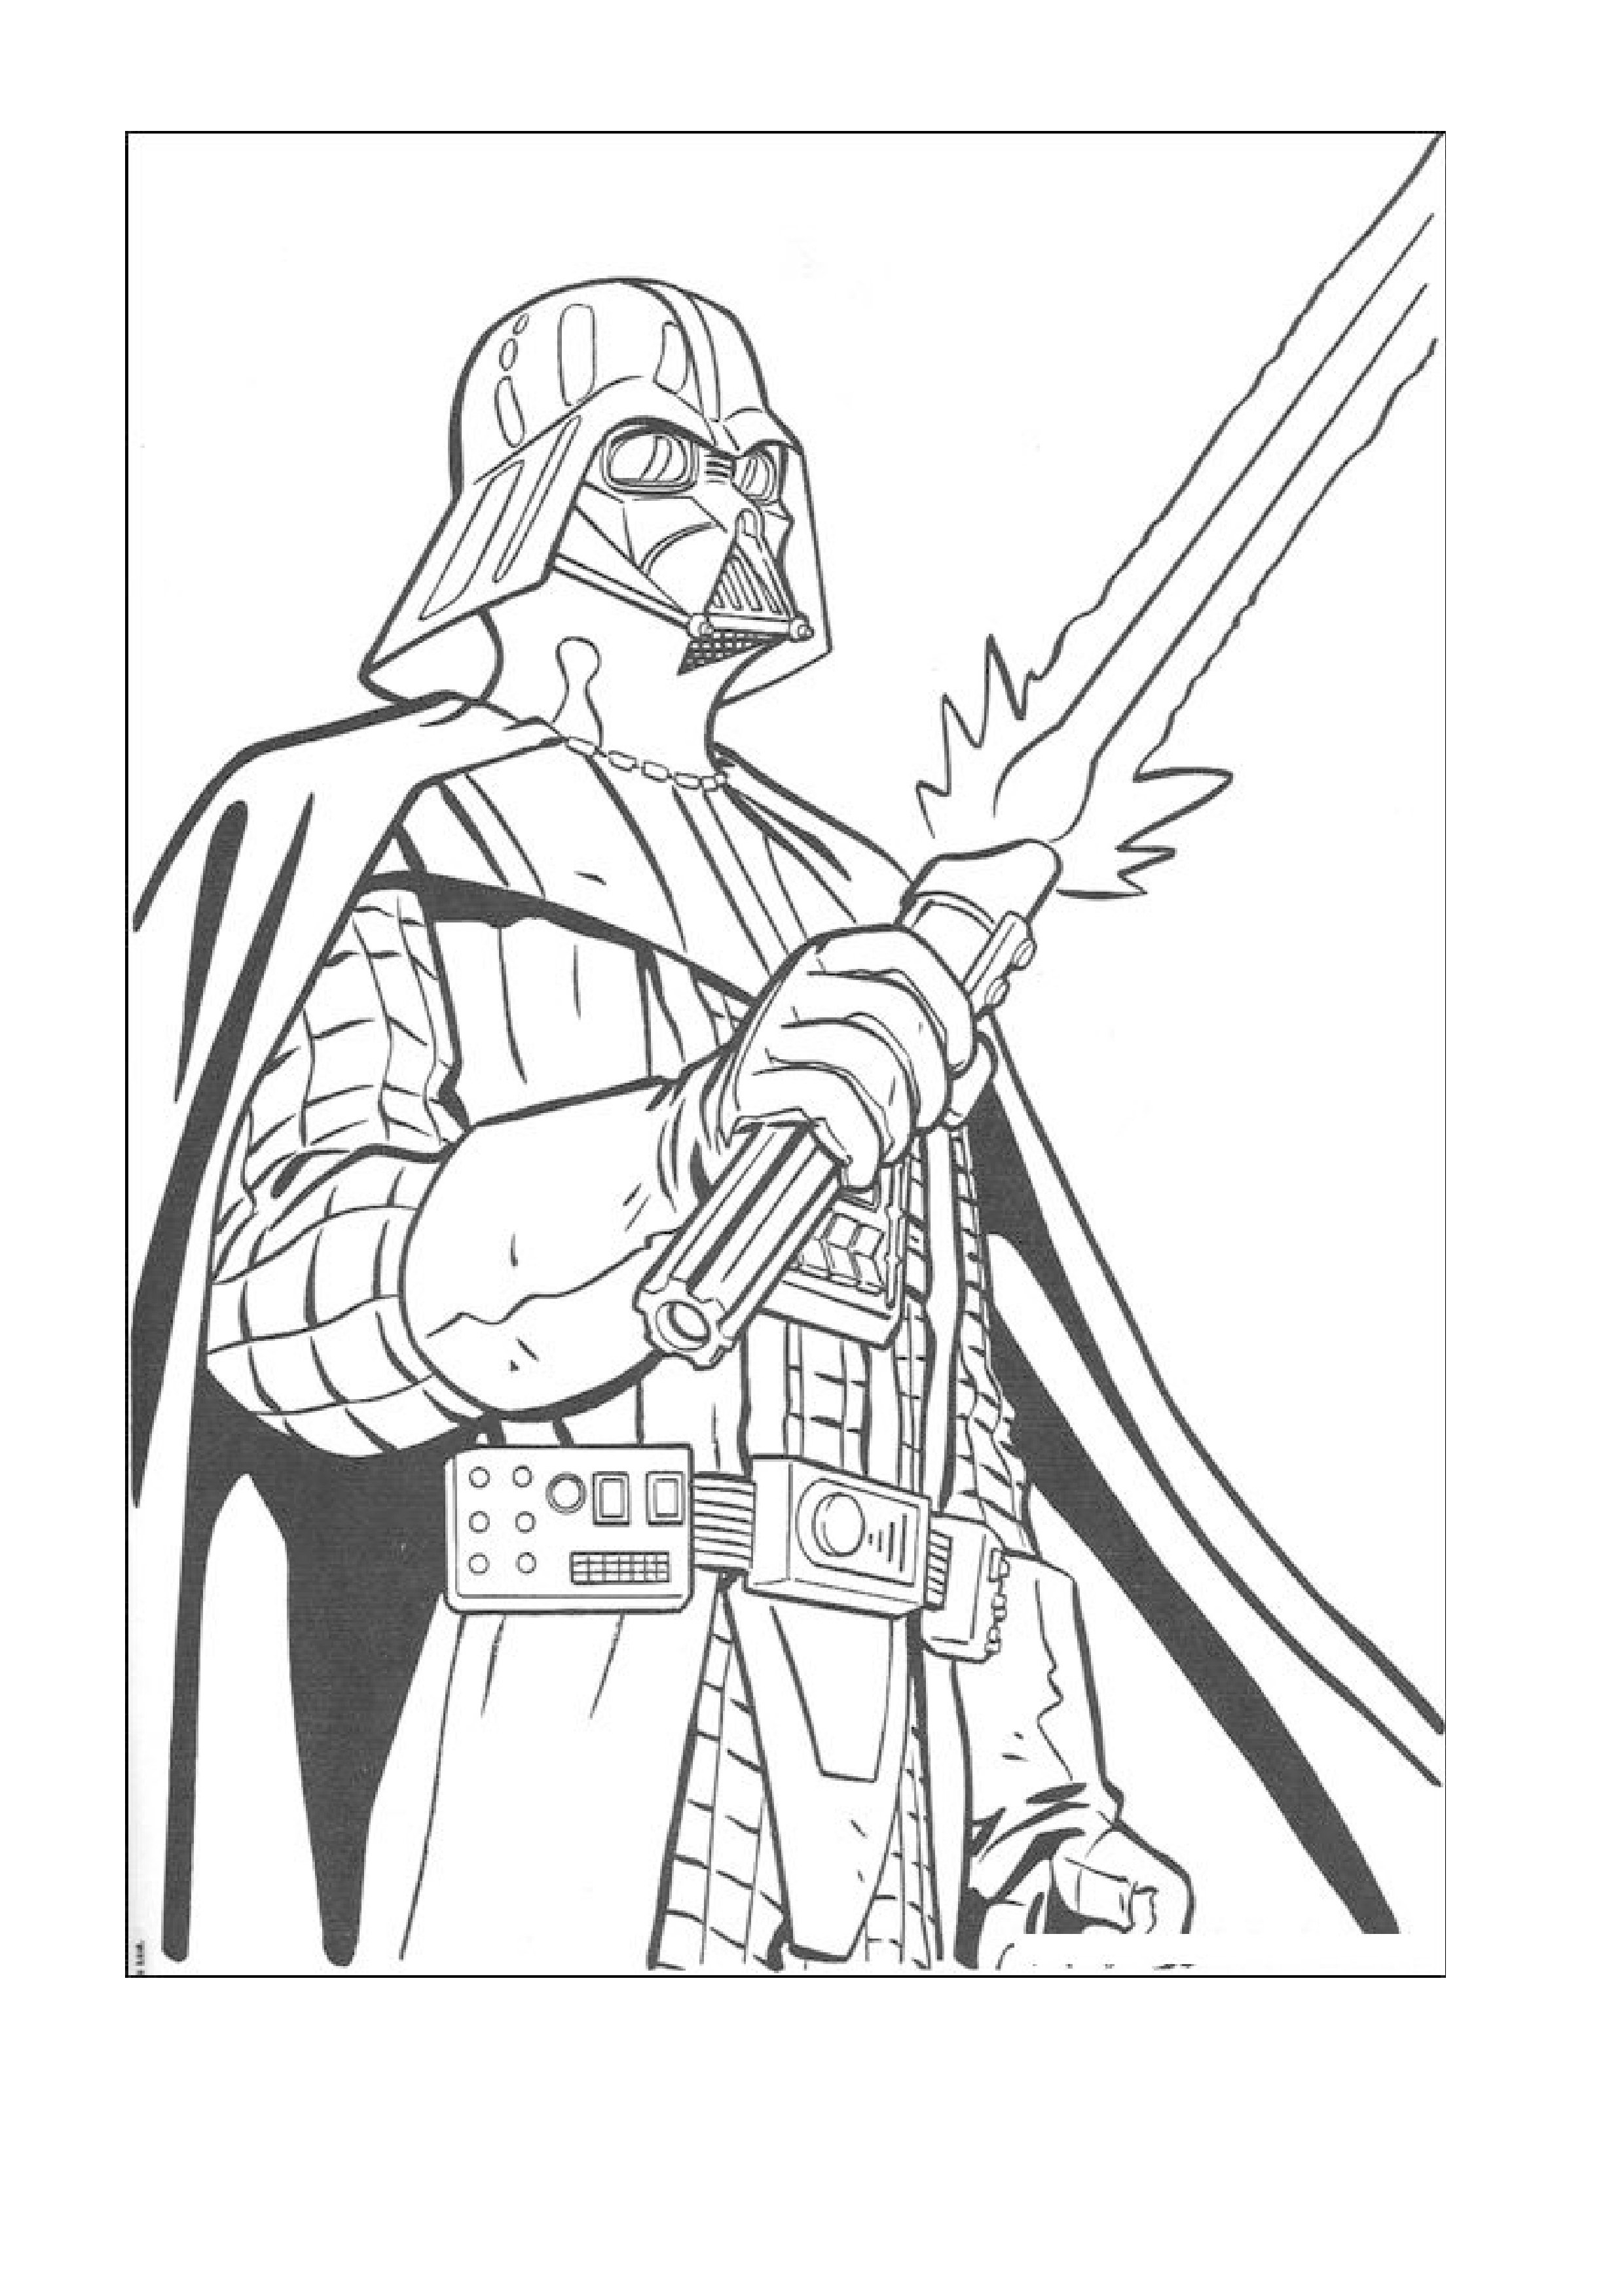 star wars print out coloring pages darth vader coloring pages star wars colors coloring wars print pages out coloring star